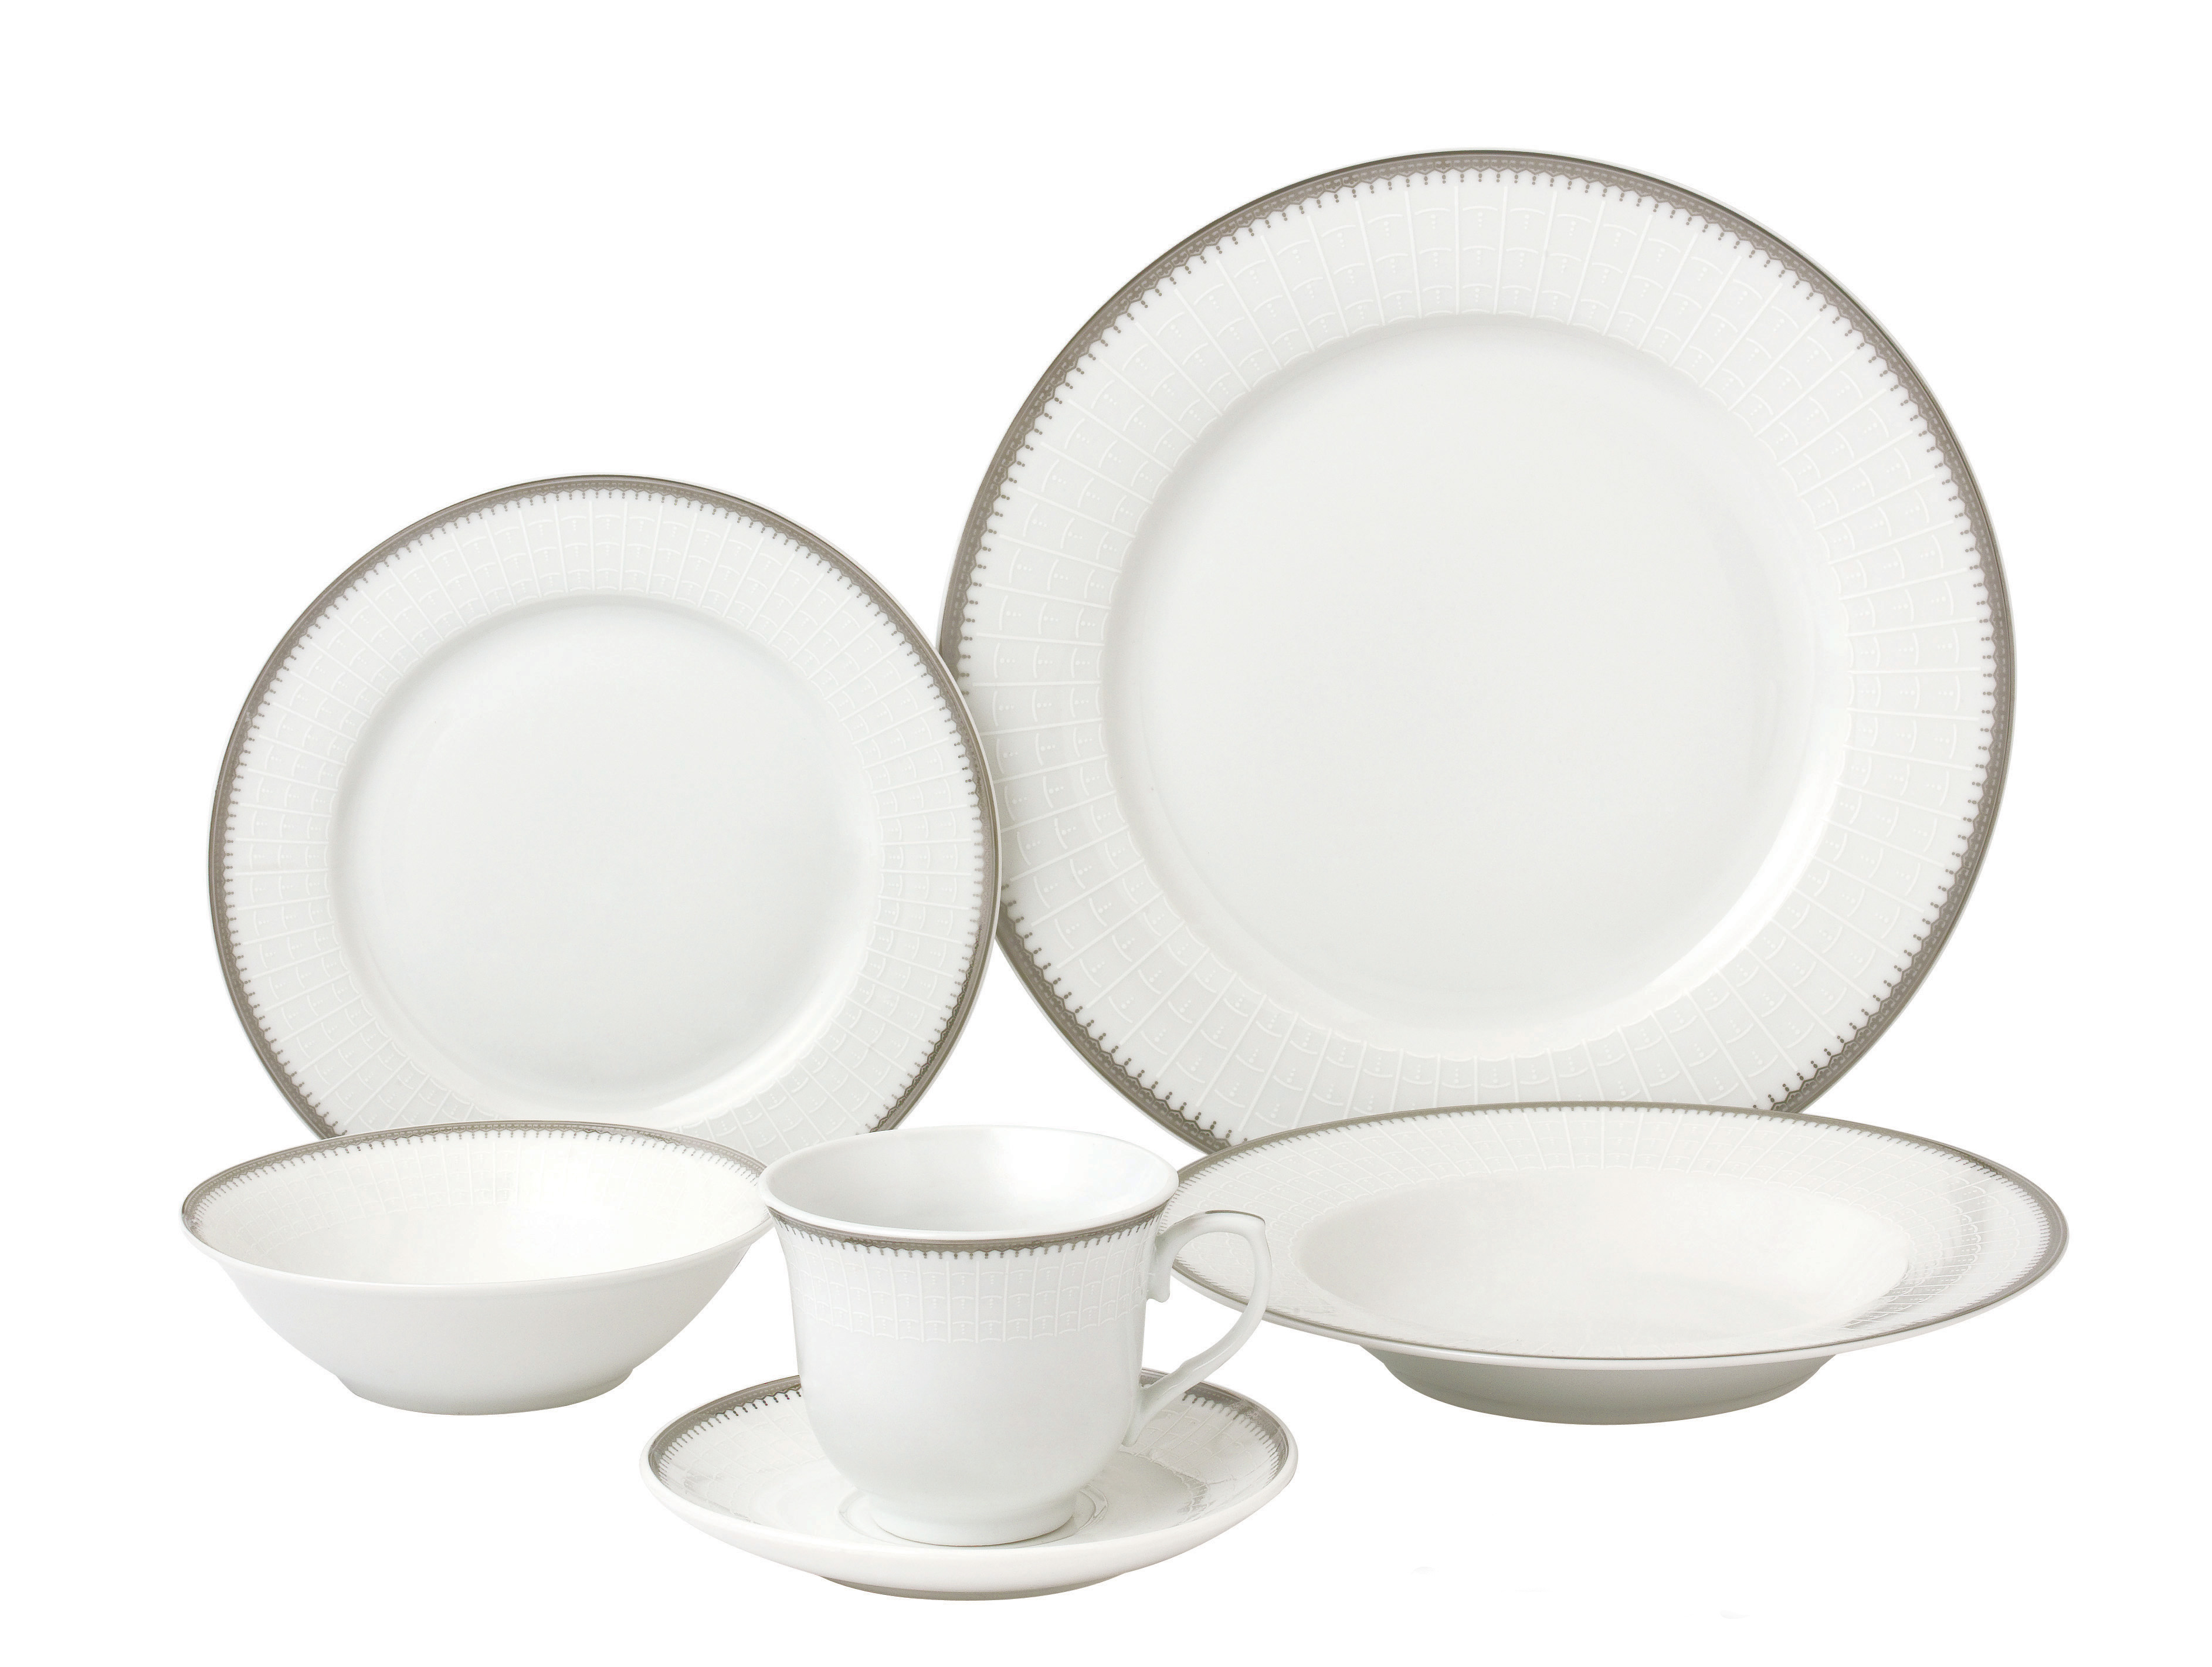 Quick View  sc 1 st  Lorenzo Import & 24 Piece Silver Porcelain Dinnerware Service for 4-Alyssa